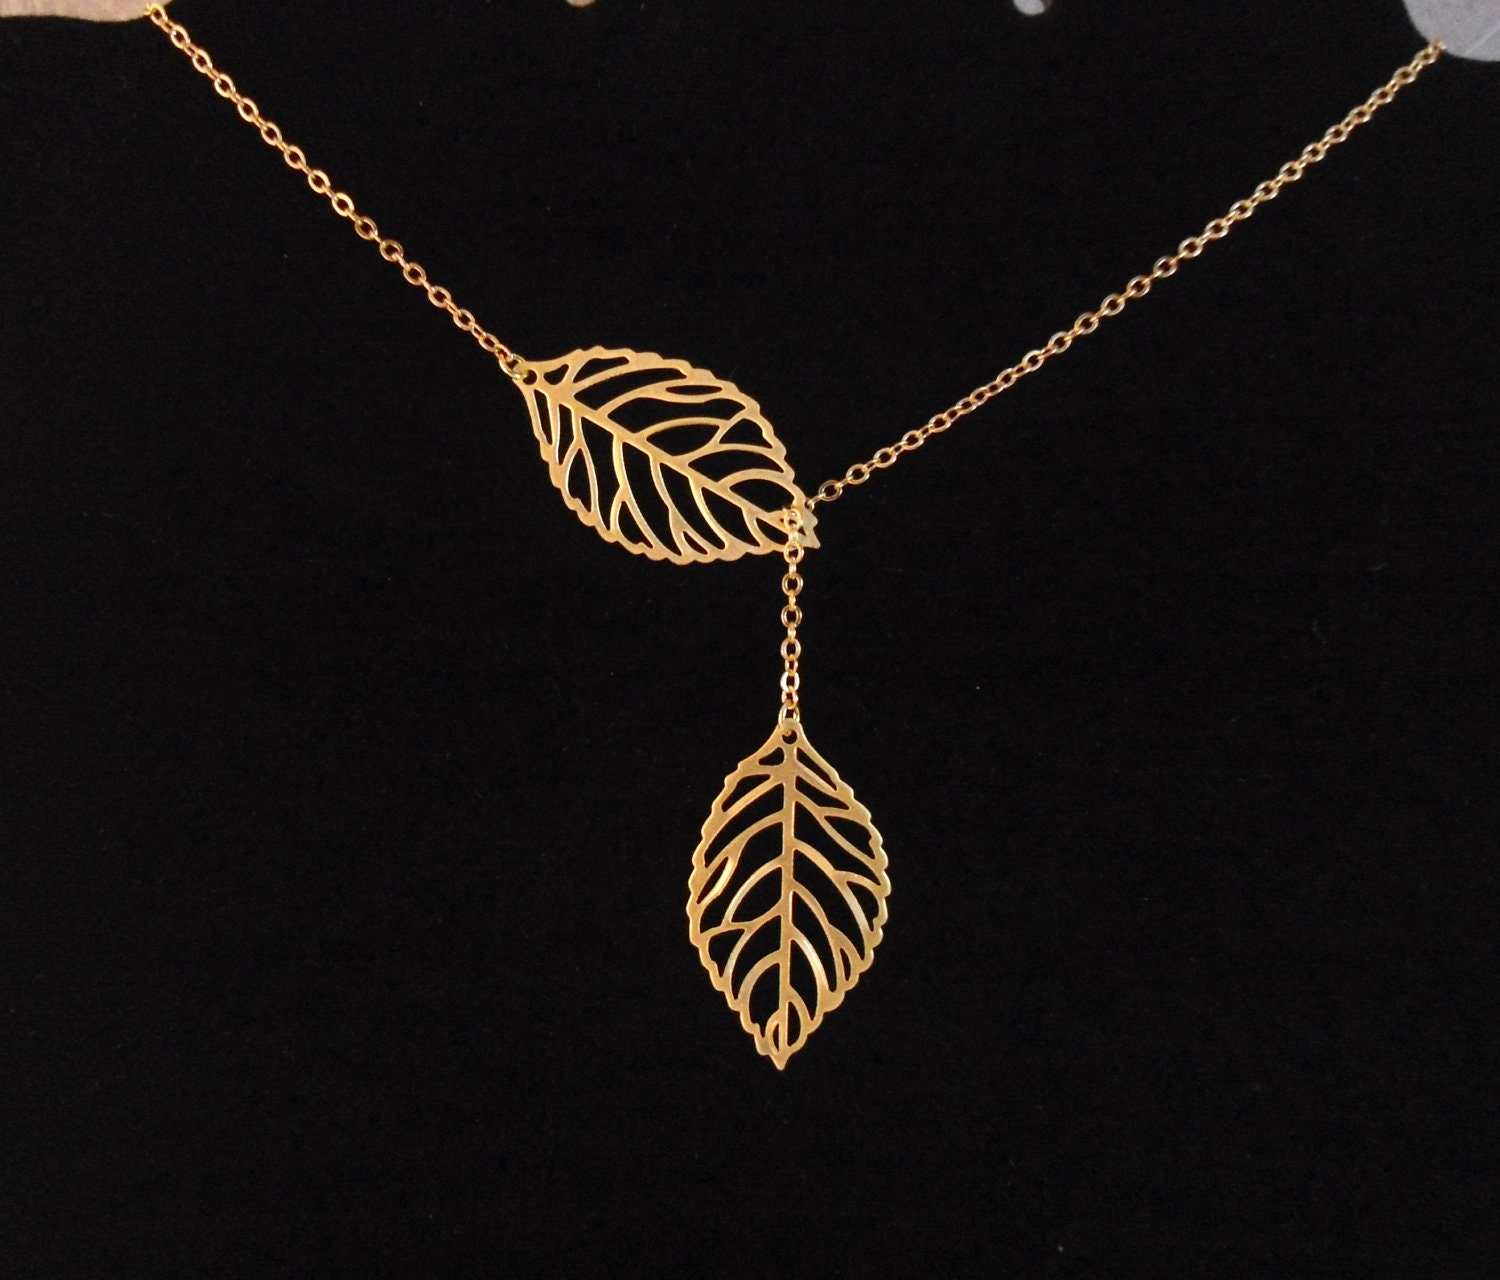 leaves lariat necklace double leaf necklace gold leaf. Black Bedroom Furniture Sets. Home Design Ideas